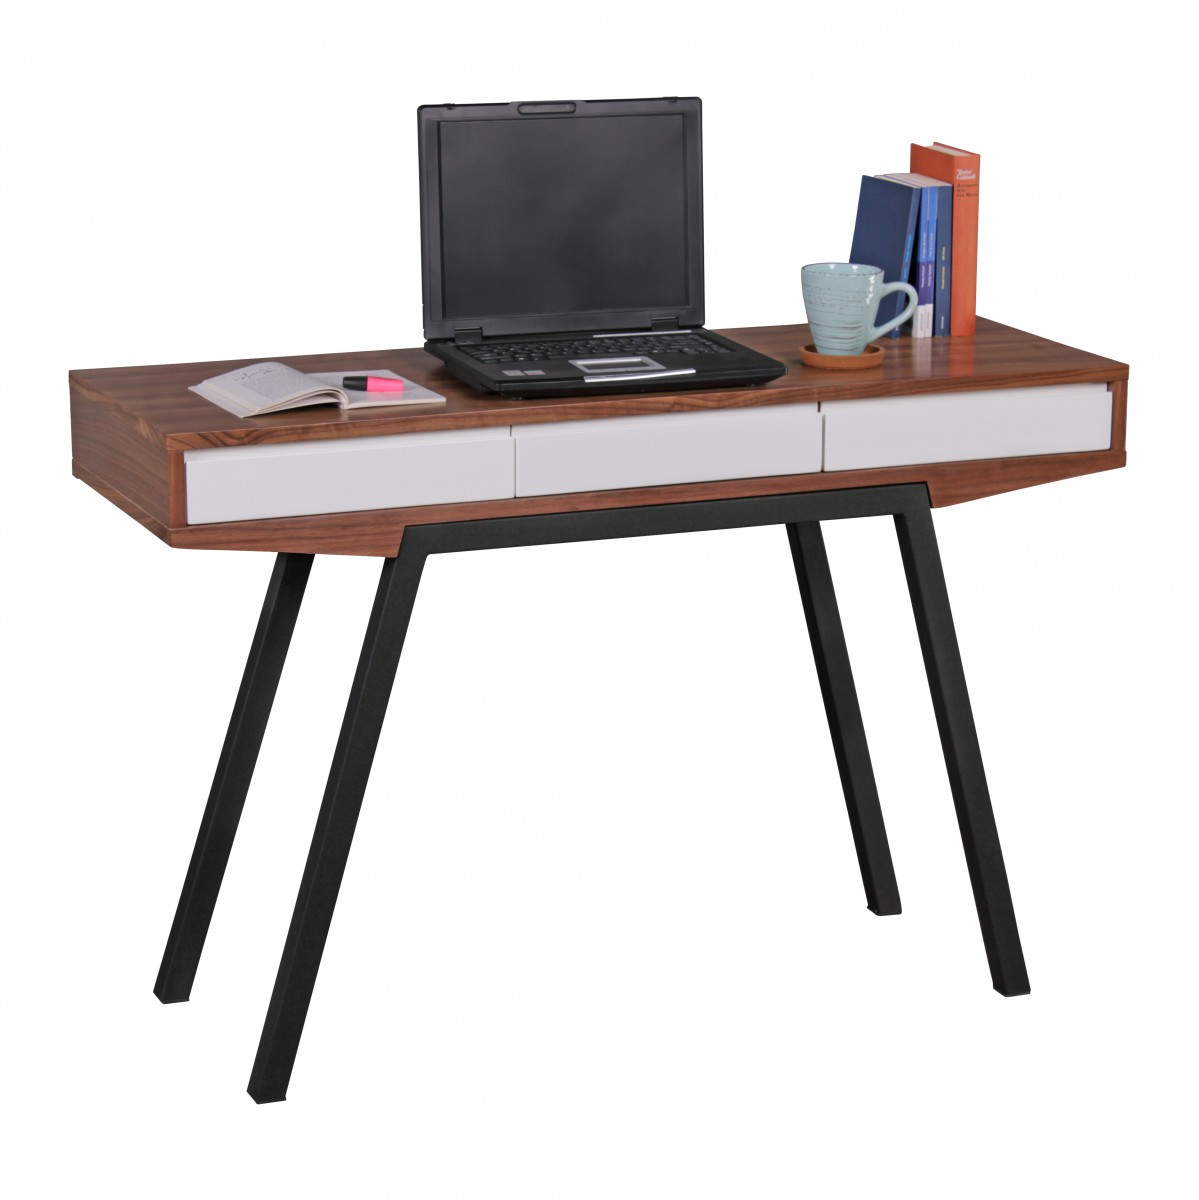 wohnling schreibtisch retro berry walnuss wei 3 schubladen 120 x 80 x 40 cm laptoptisch mit. Black Bedroom Furniture Sets. Home Design Ideas